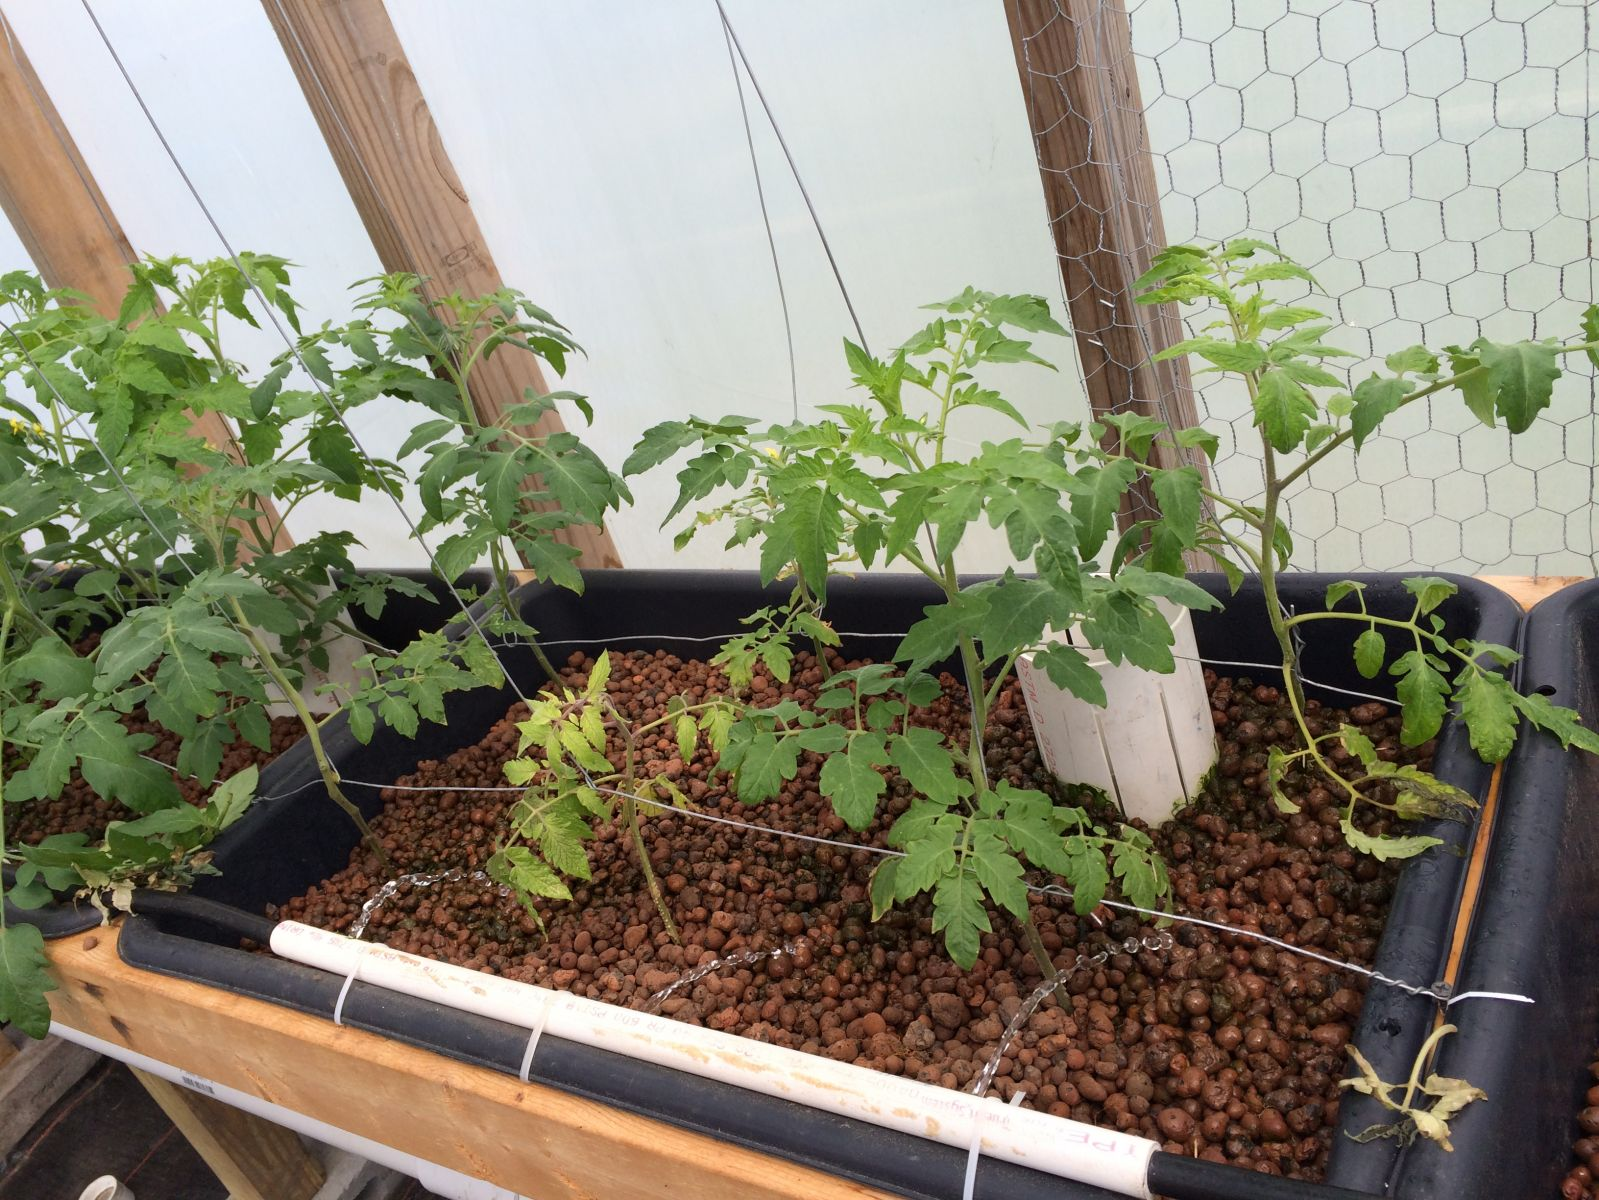 Another Tomato Bed